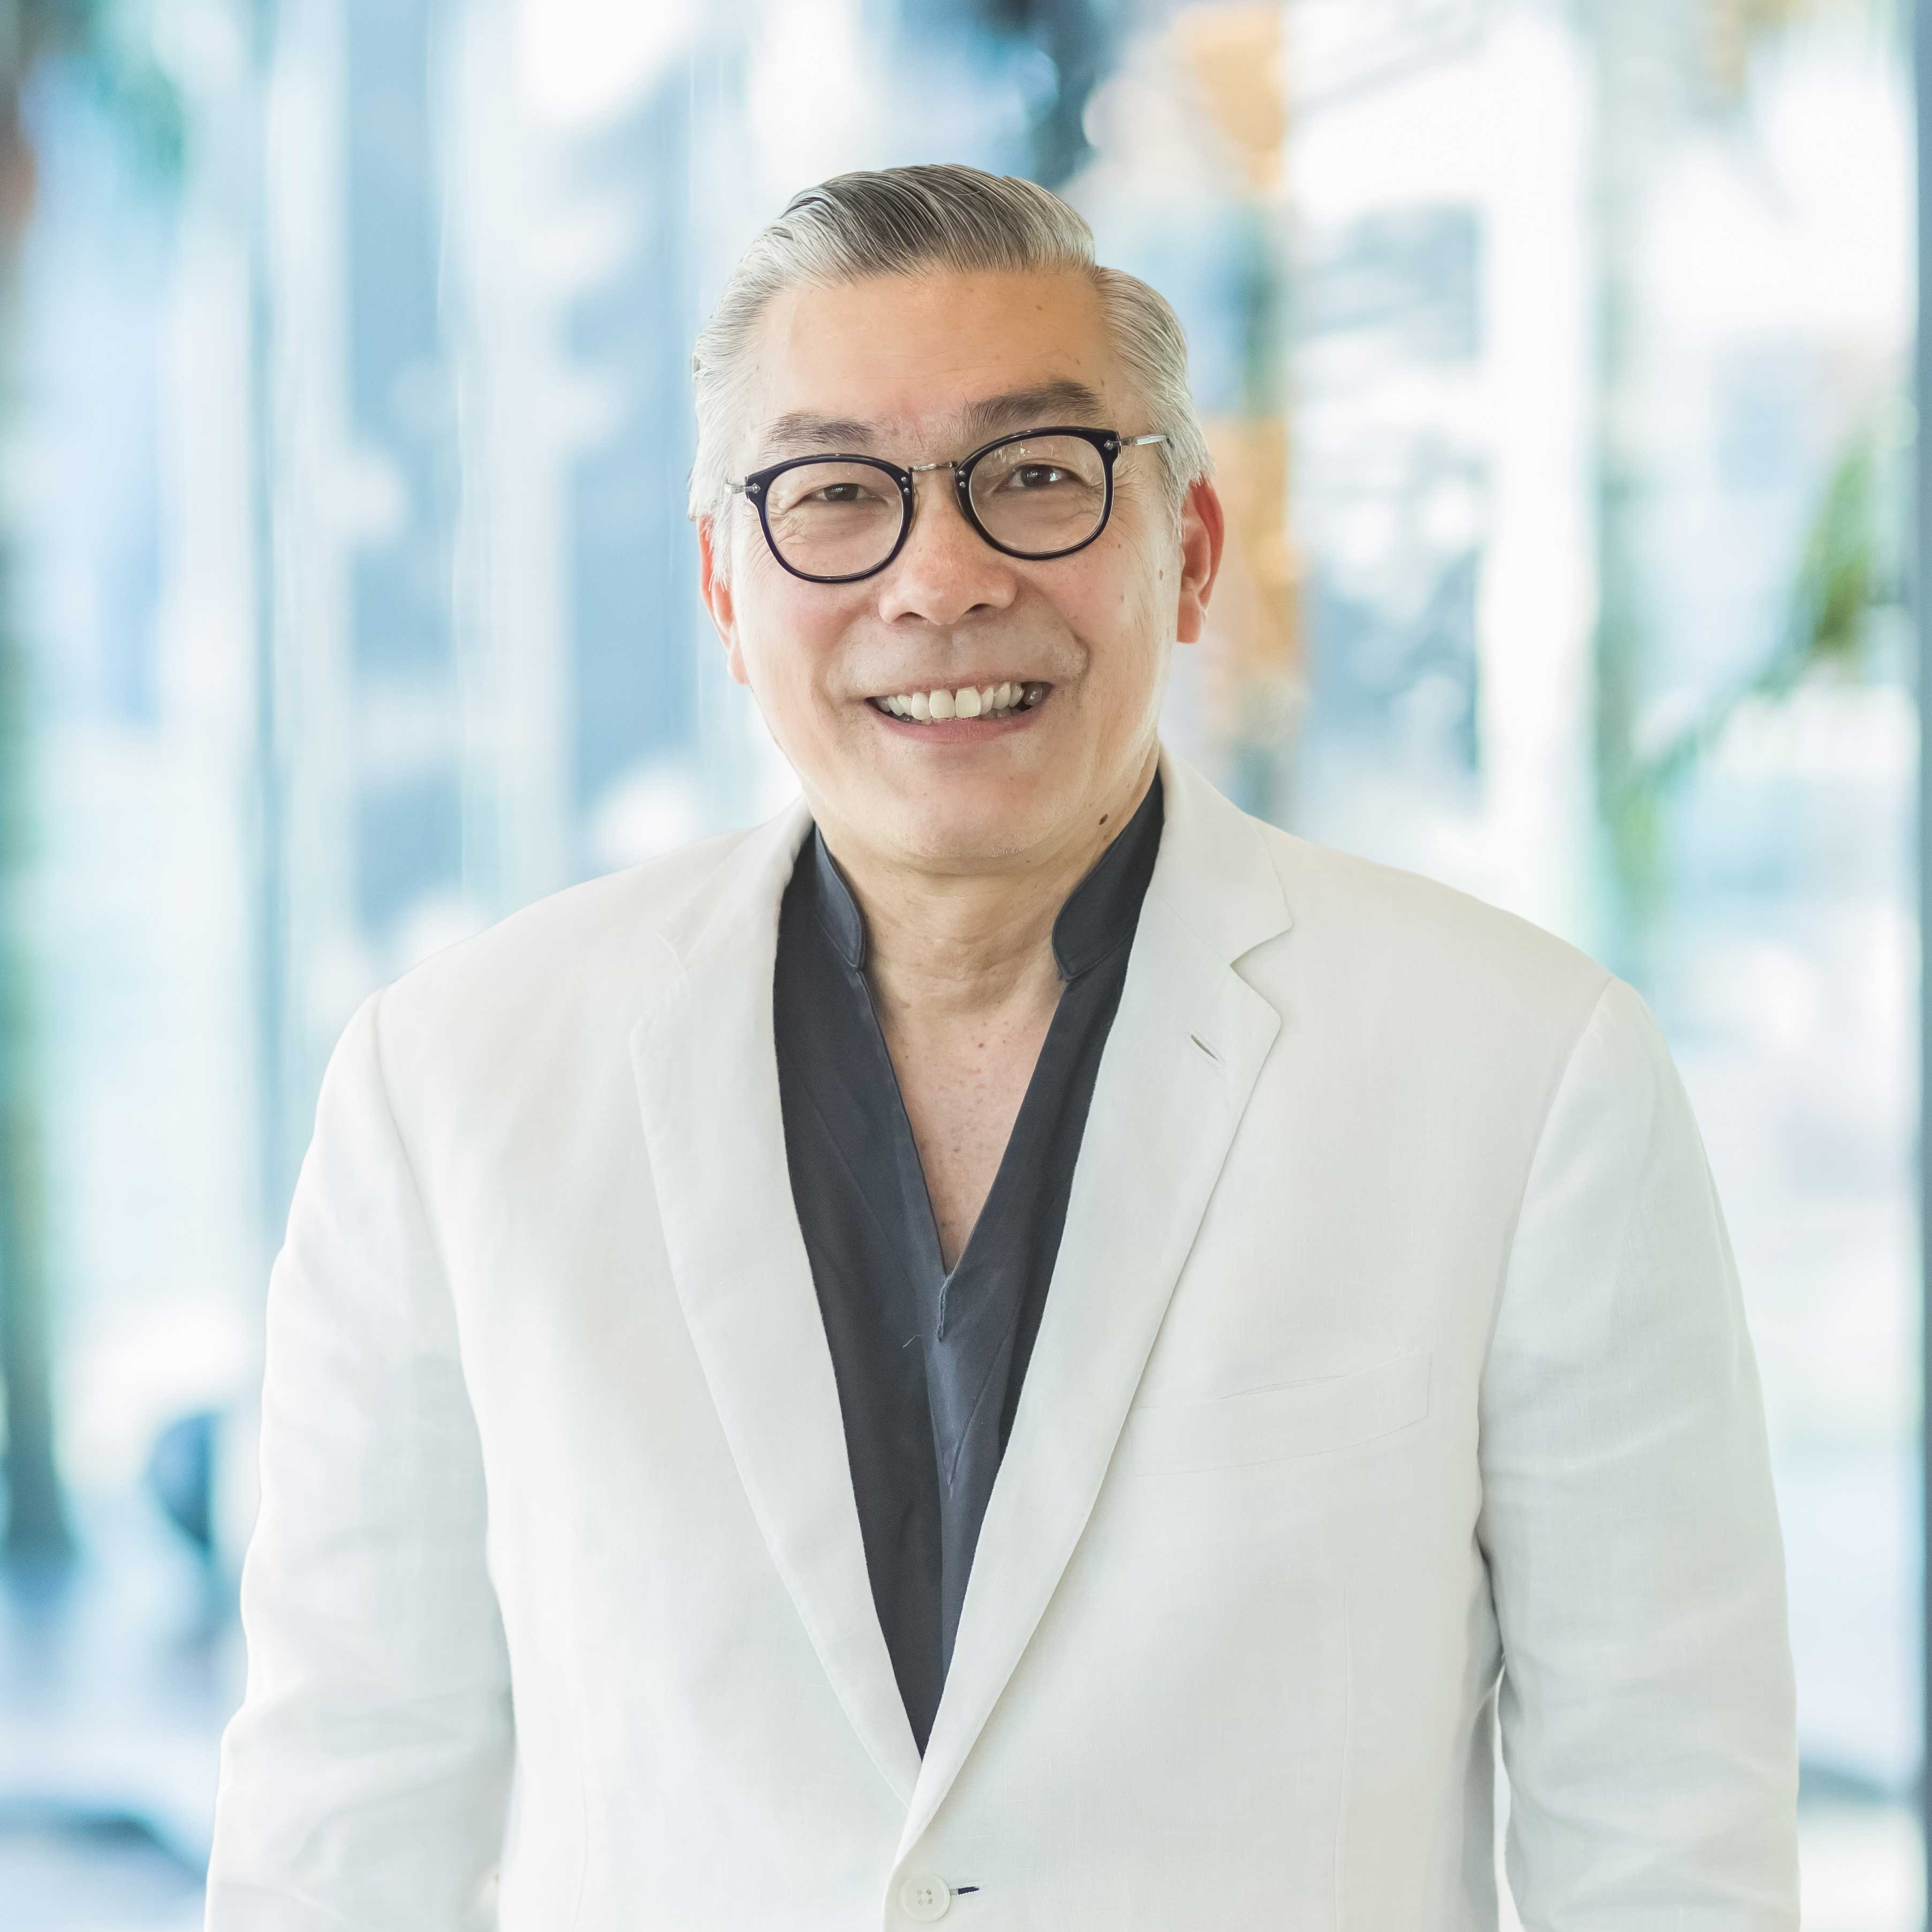 Dr. Tan Wee Khin - Obstetrician and gynaecologist